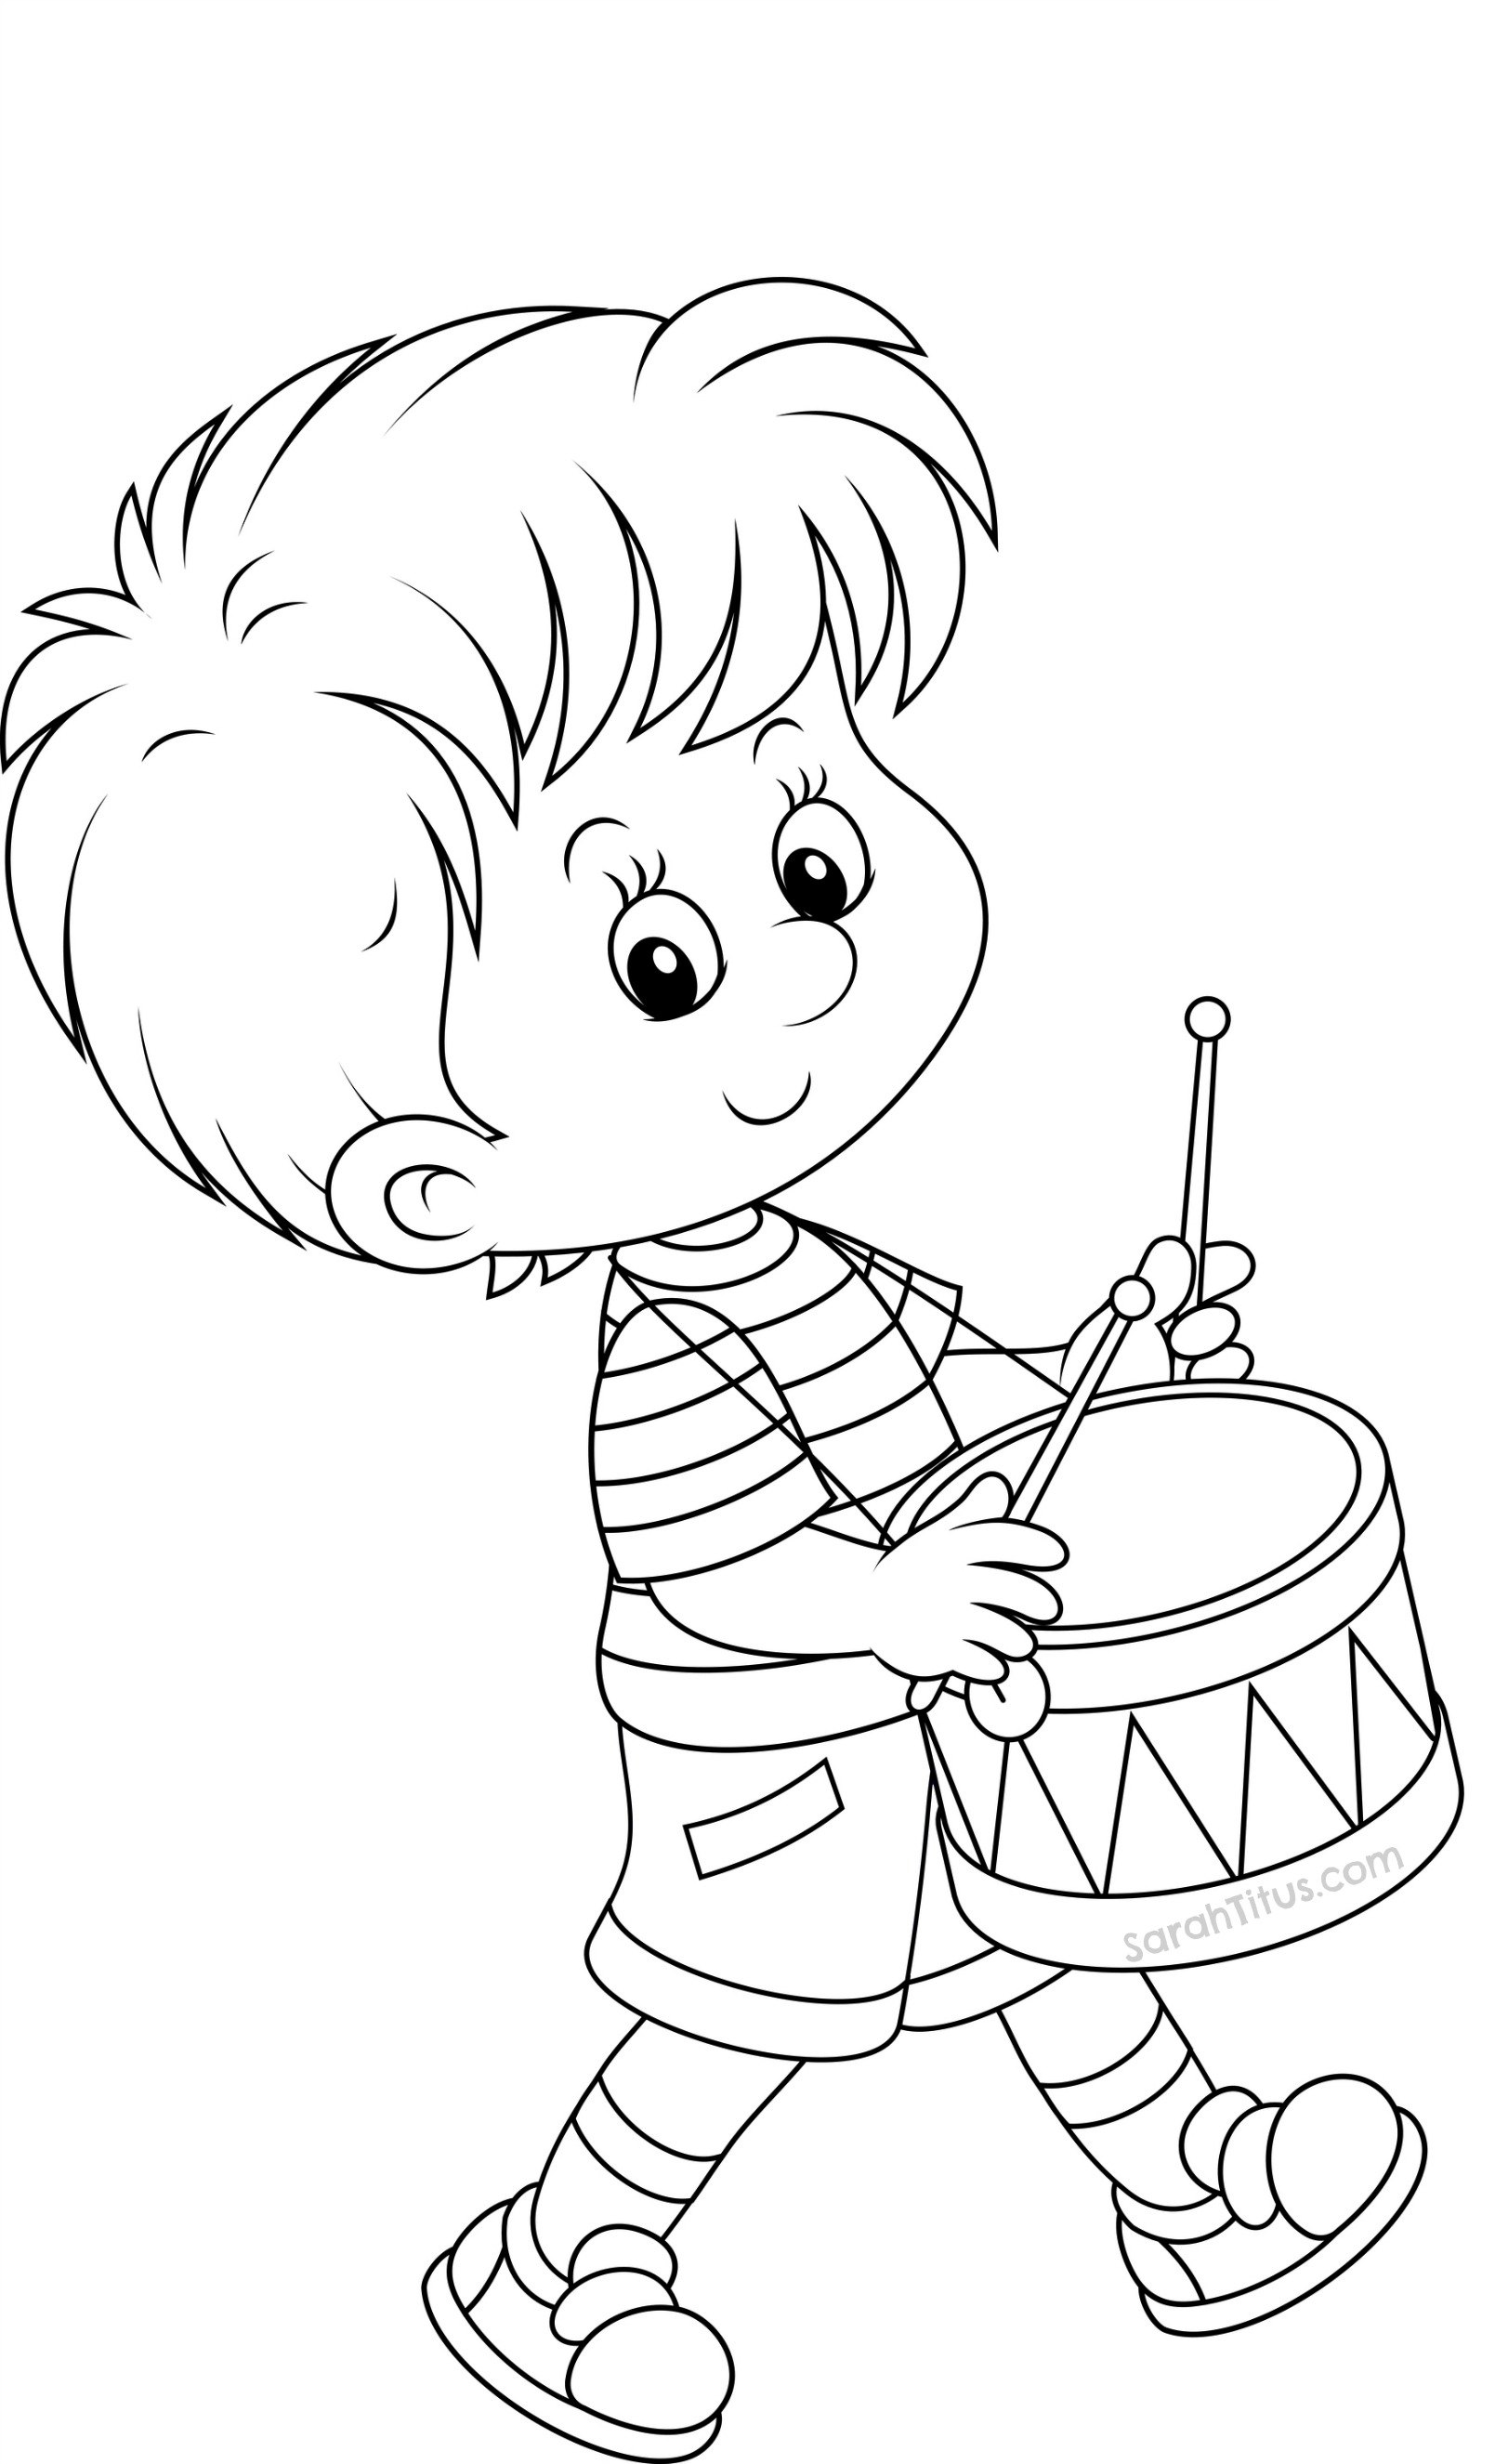 back to school coloring pages - School Coloring Sheets